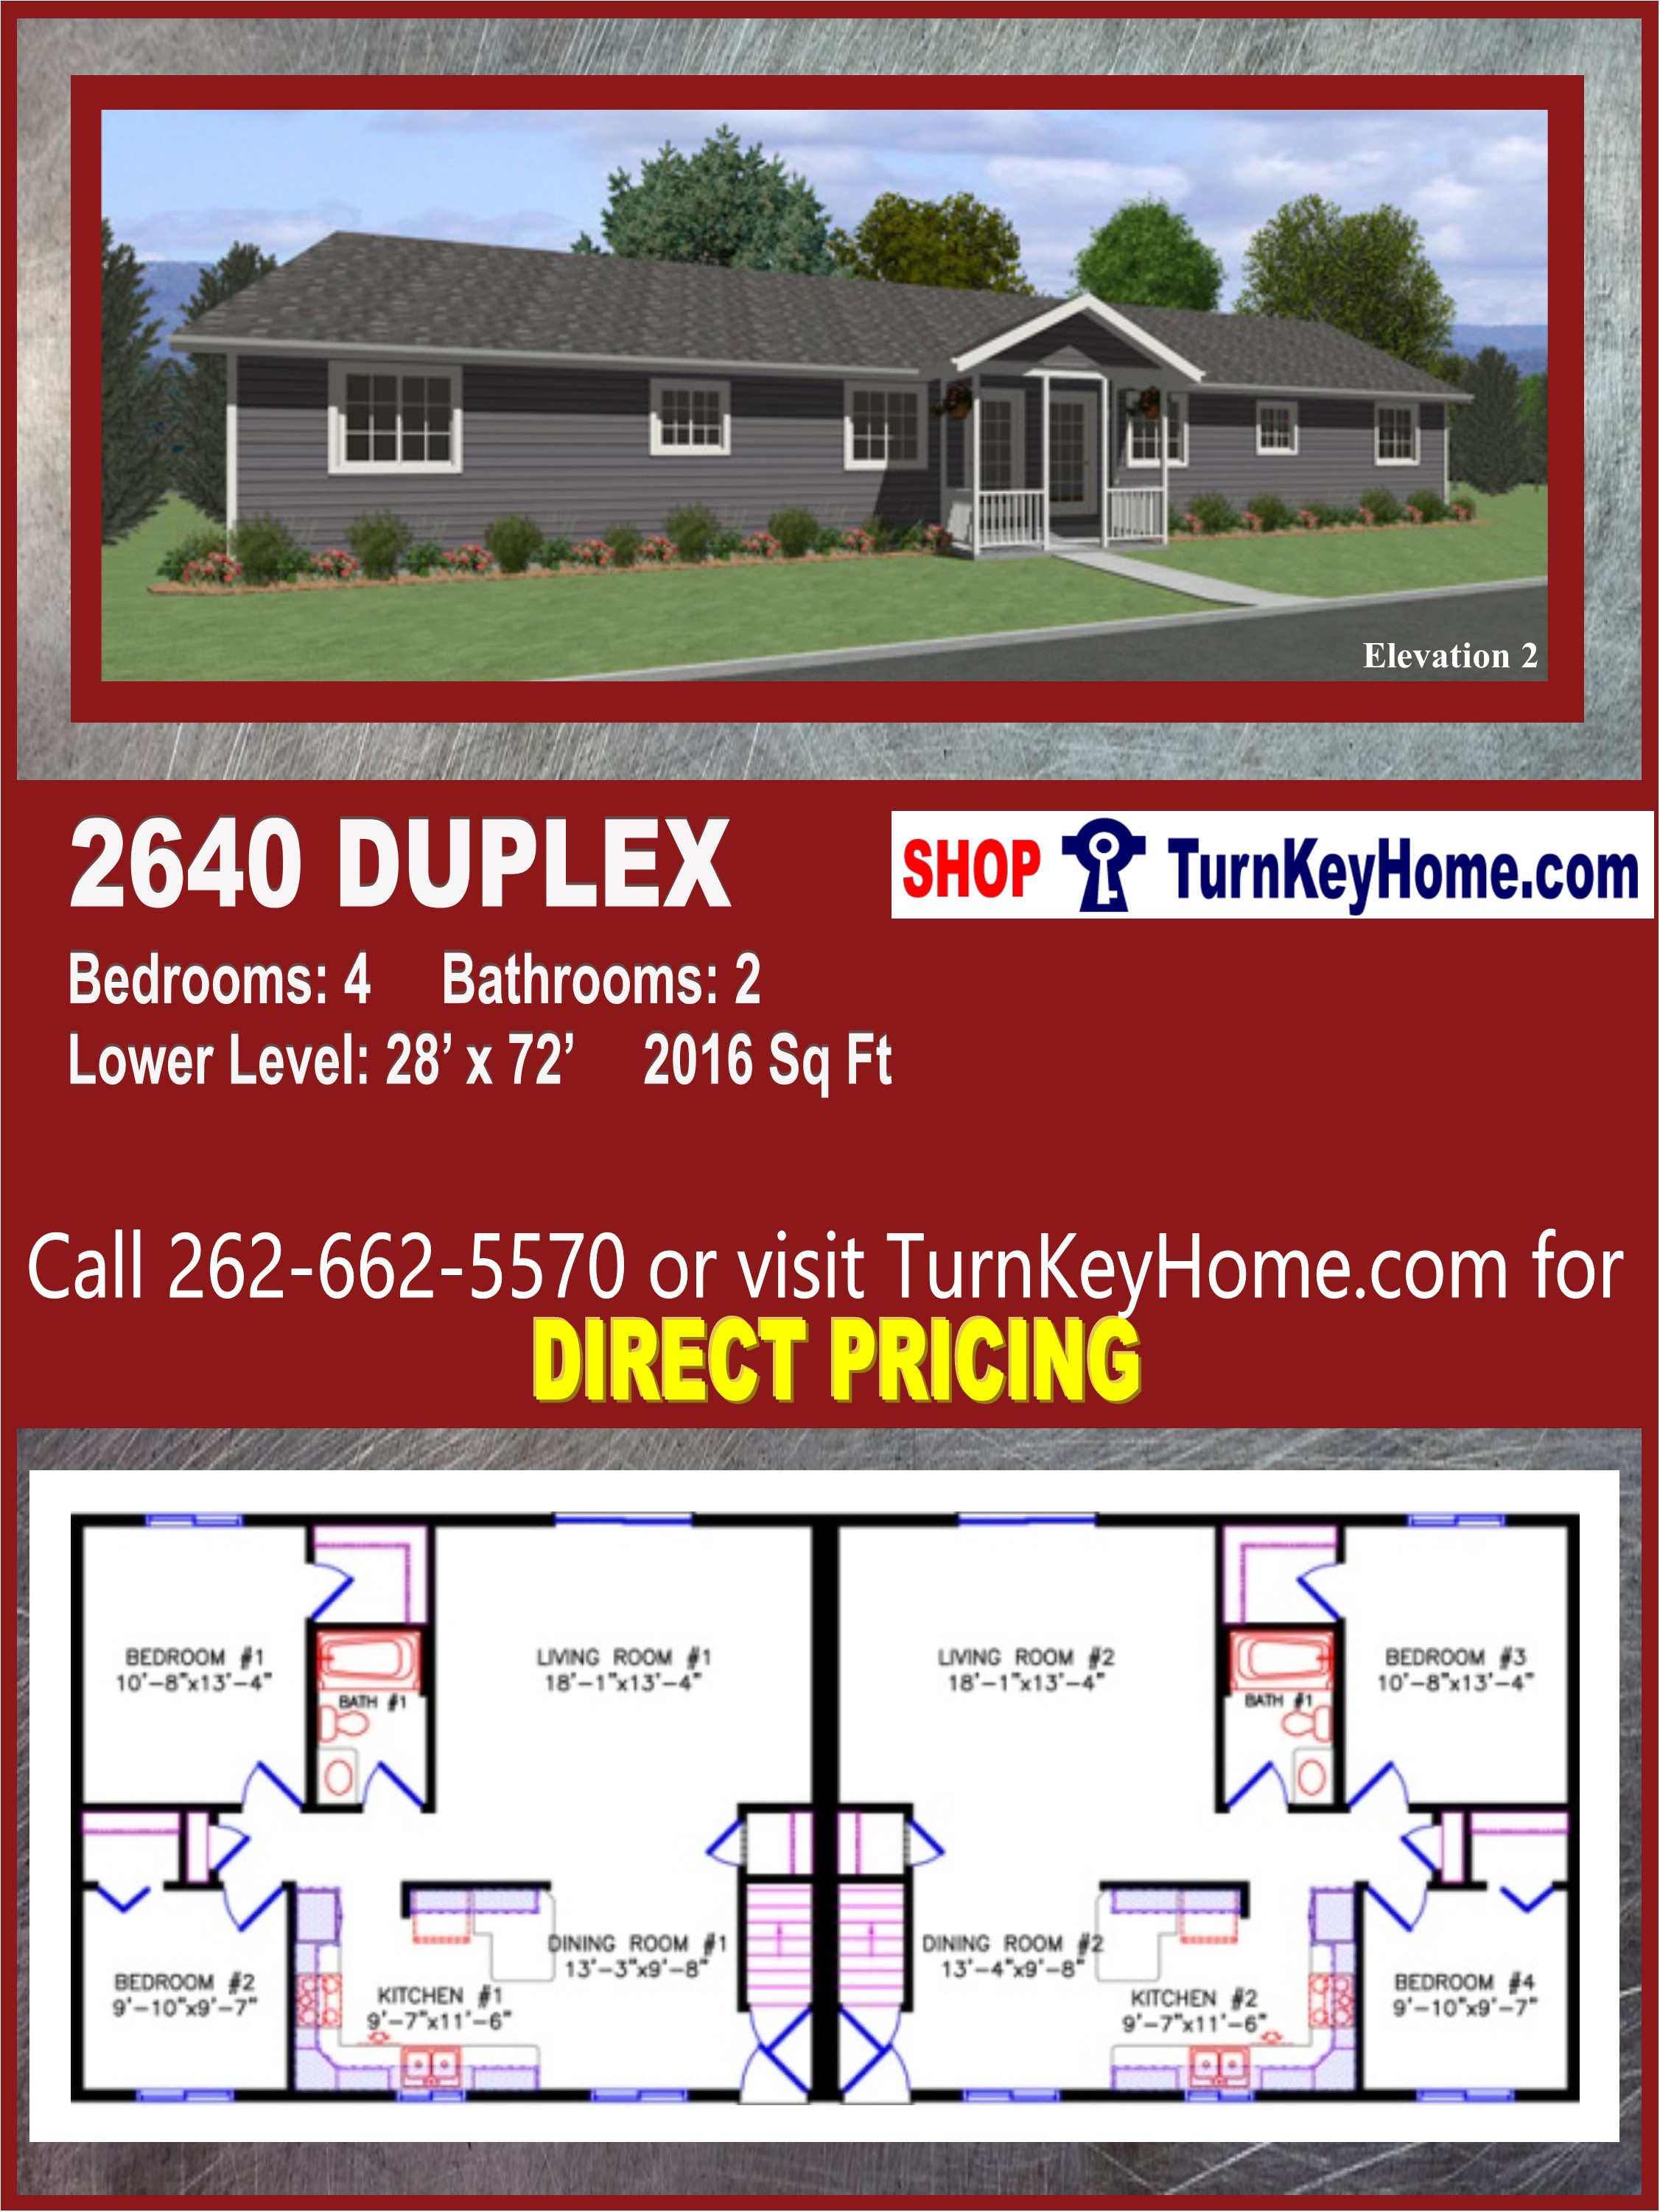 How Much Does It Cost To Build A Duplex In Wisconsin